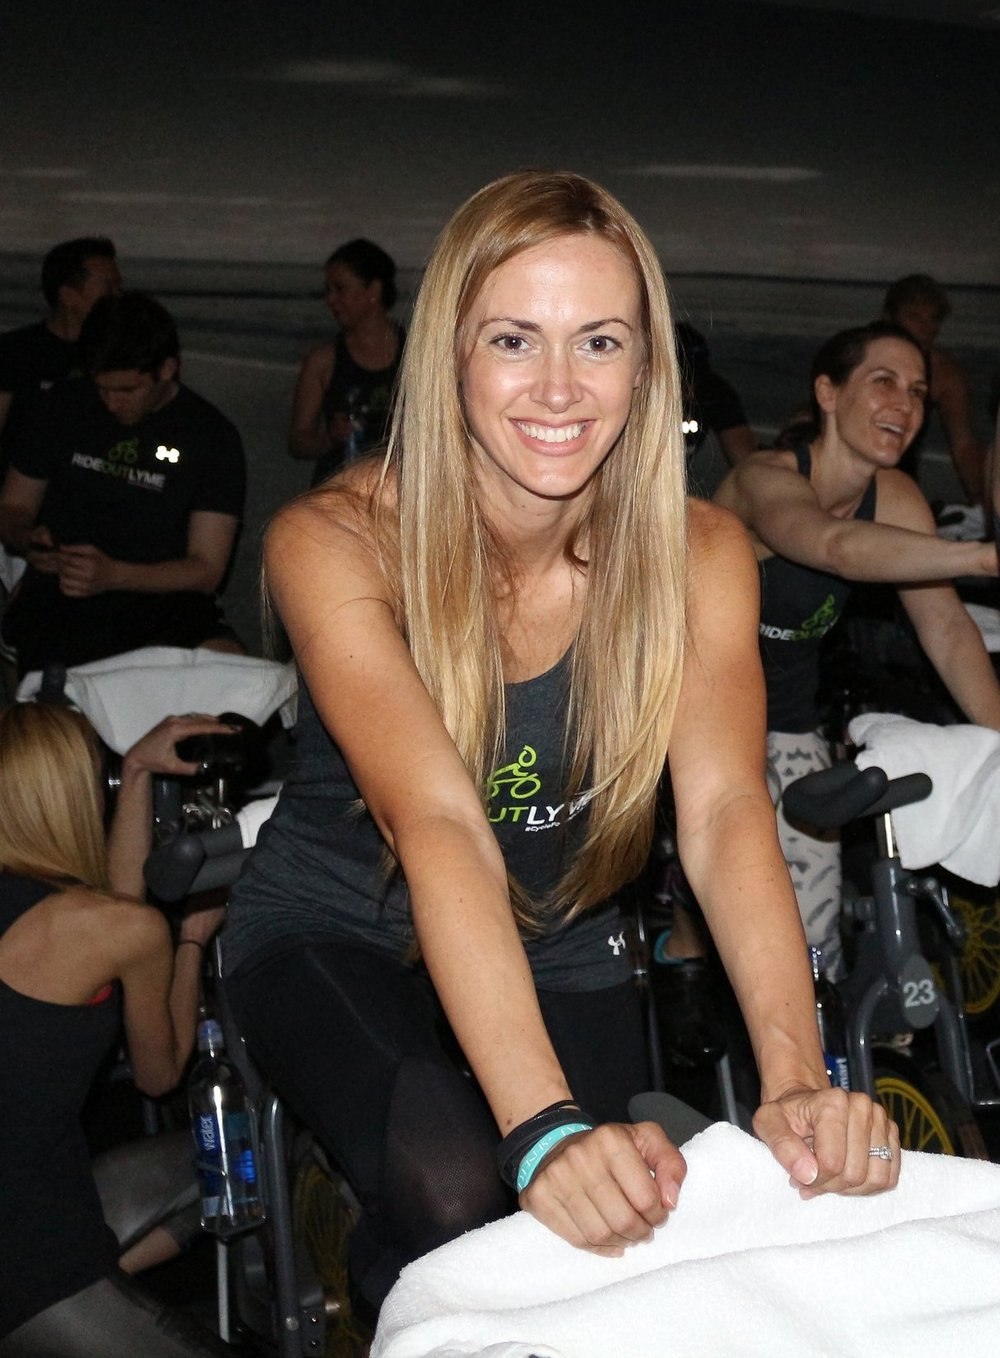 BRANDI DEAN - Co-Founder, Ride Out Lyme